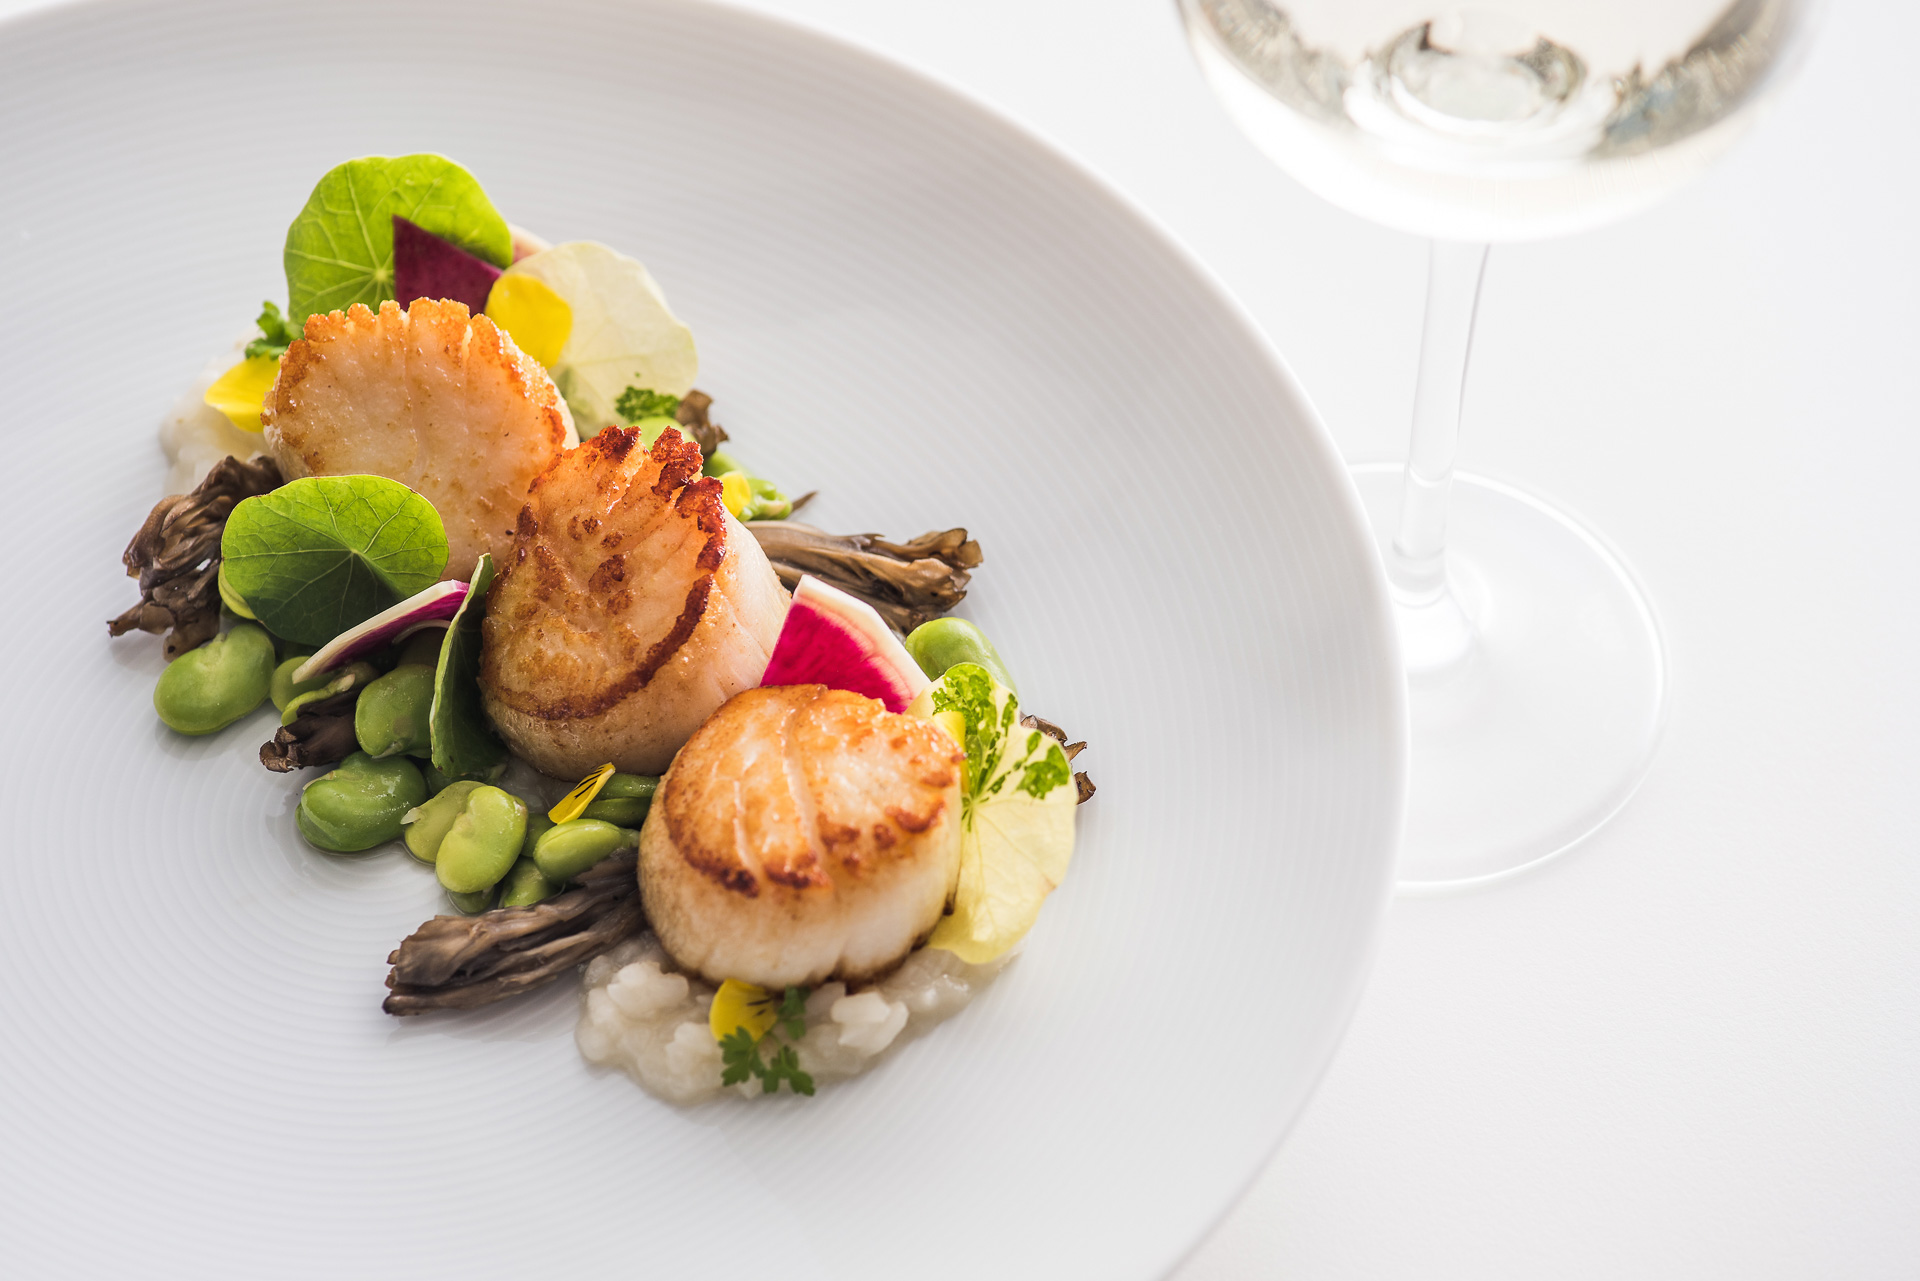 Provenance scallop dish